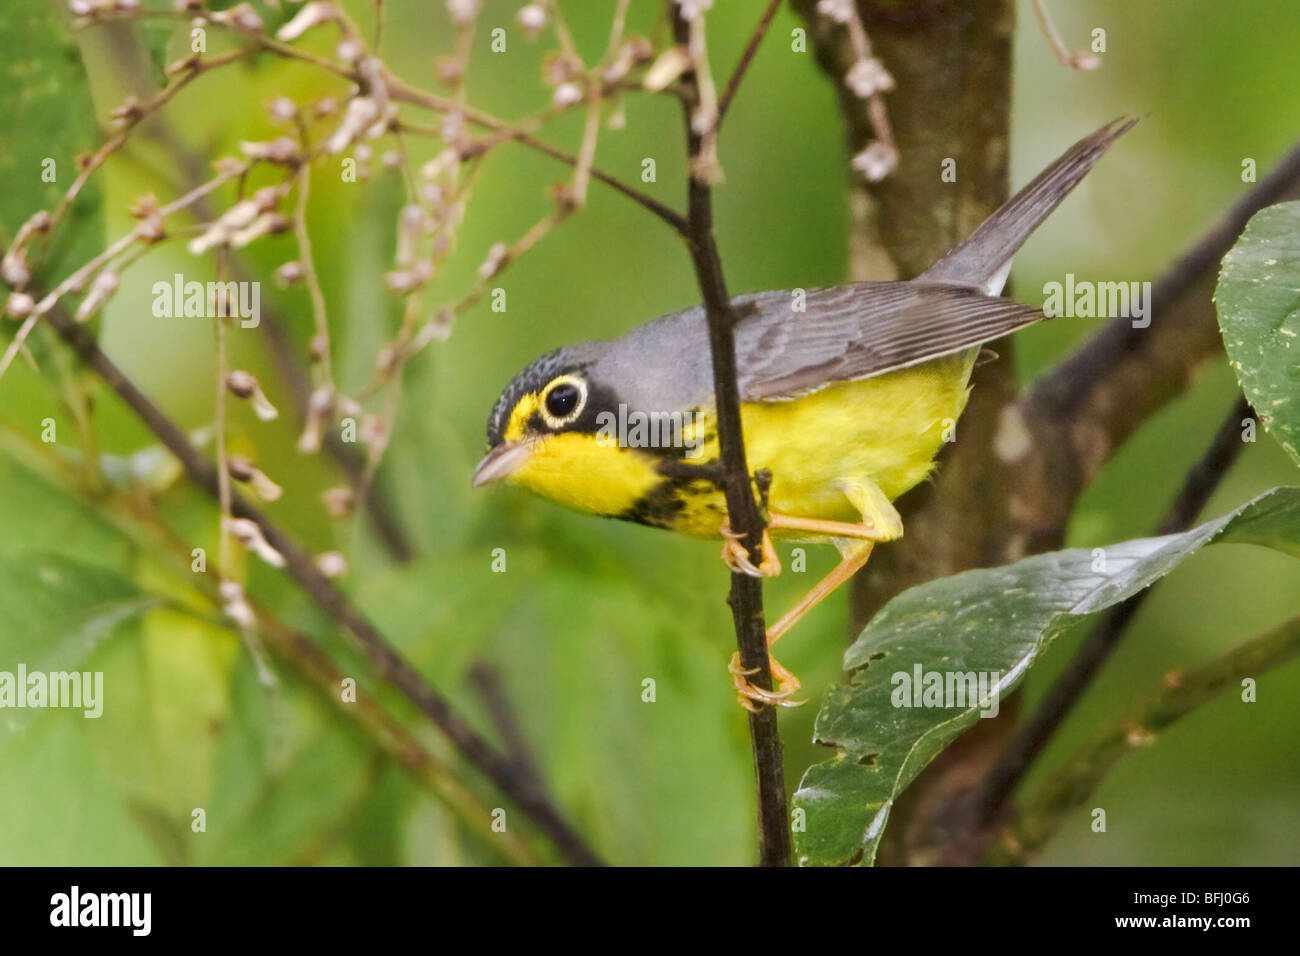 A migratory Canada Warbler (Wilsonia canadensis) perched on a branch near Podocarpus National Park in southeast Stock Photo